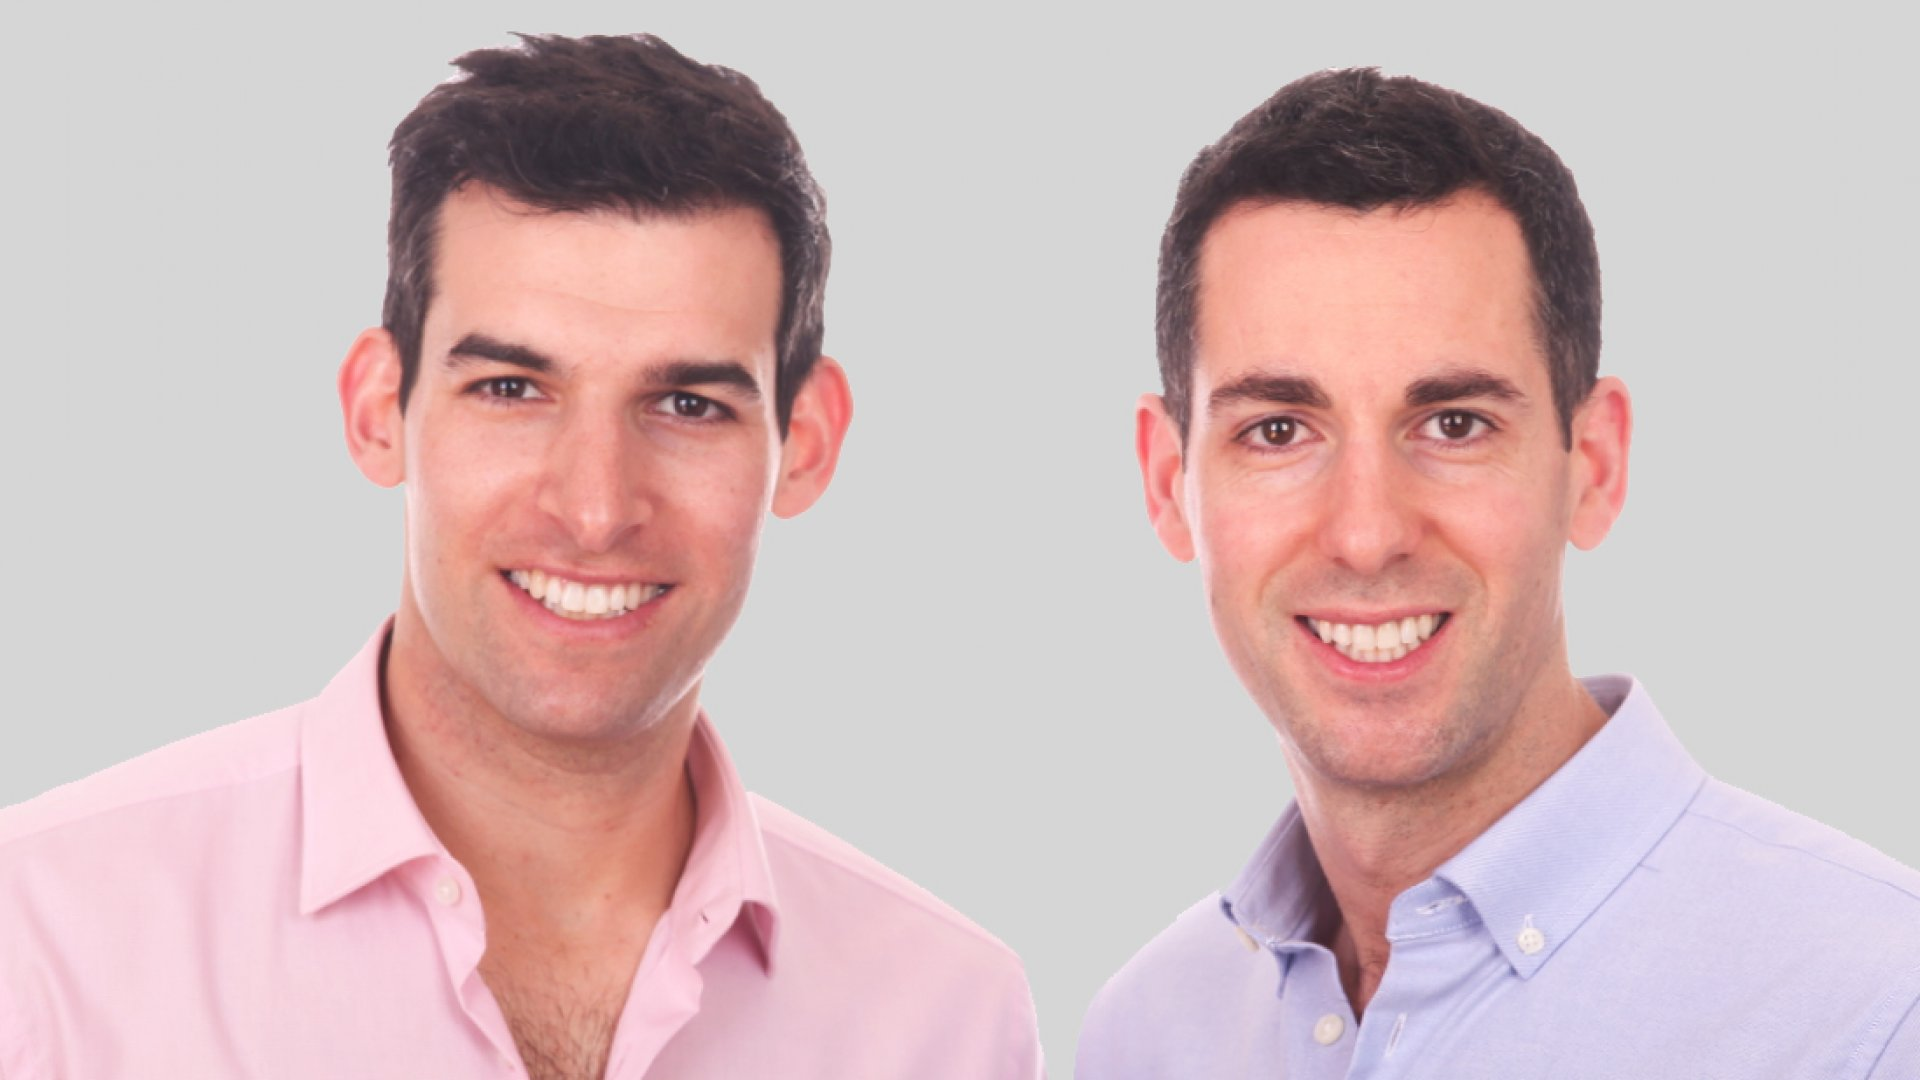 Cole Zucker and Guillaume Vidal are co-CEOs of Green Creative.Cole Zucker and Guillaume Vidal are co-CEOs of Green Creative.